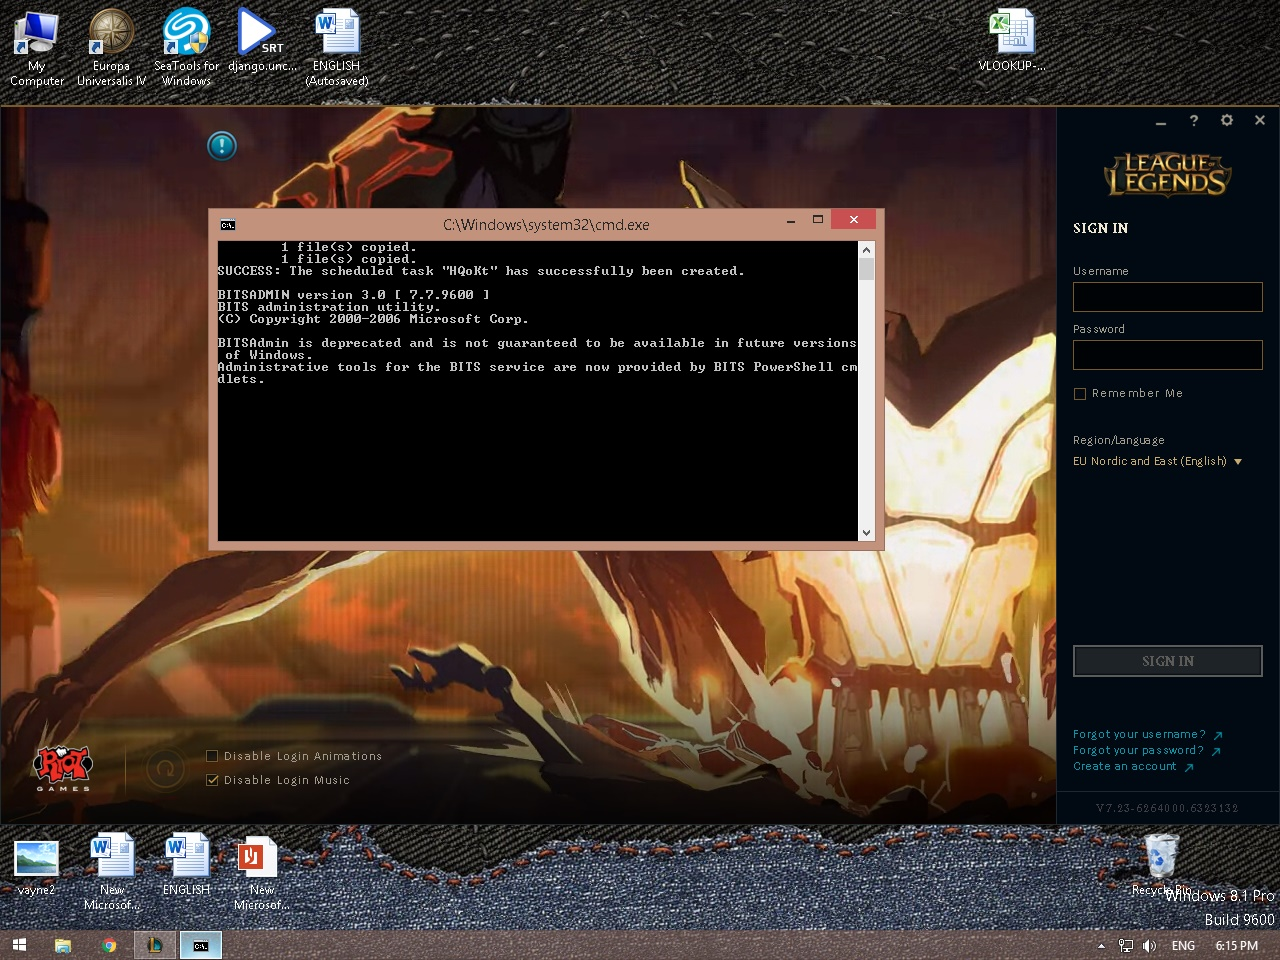 cmd exe at start and awd cleaner repeating result - Resolved